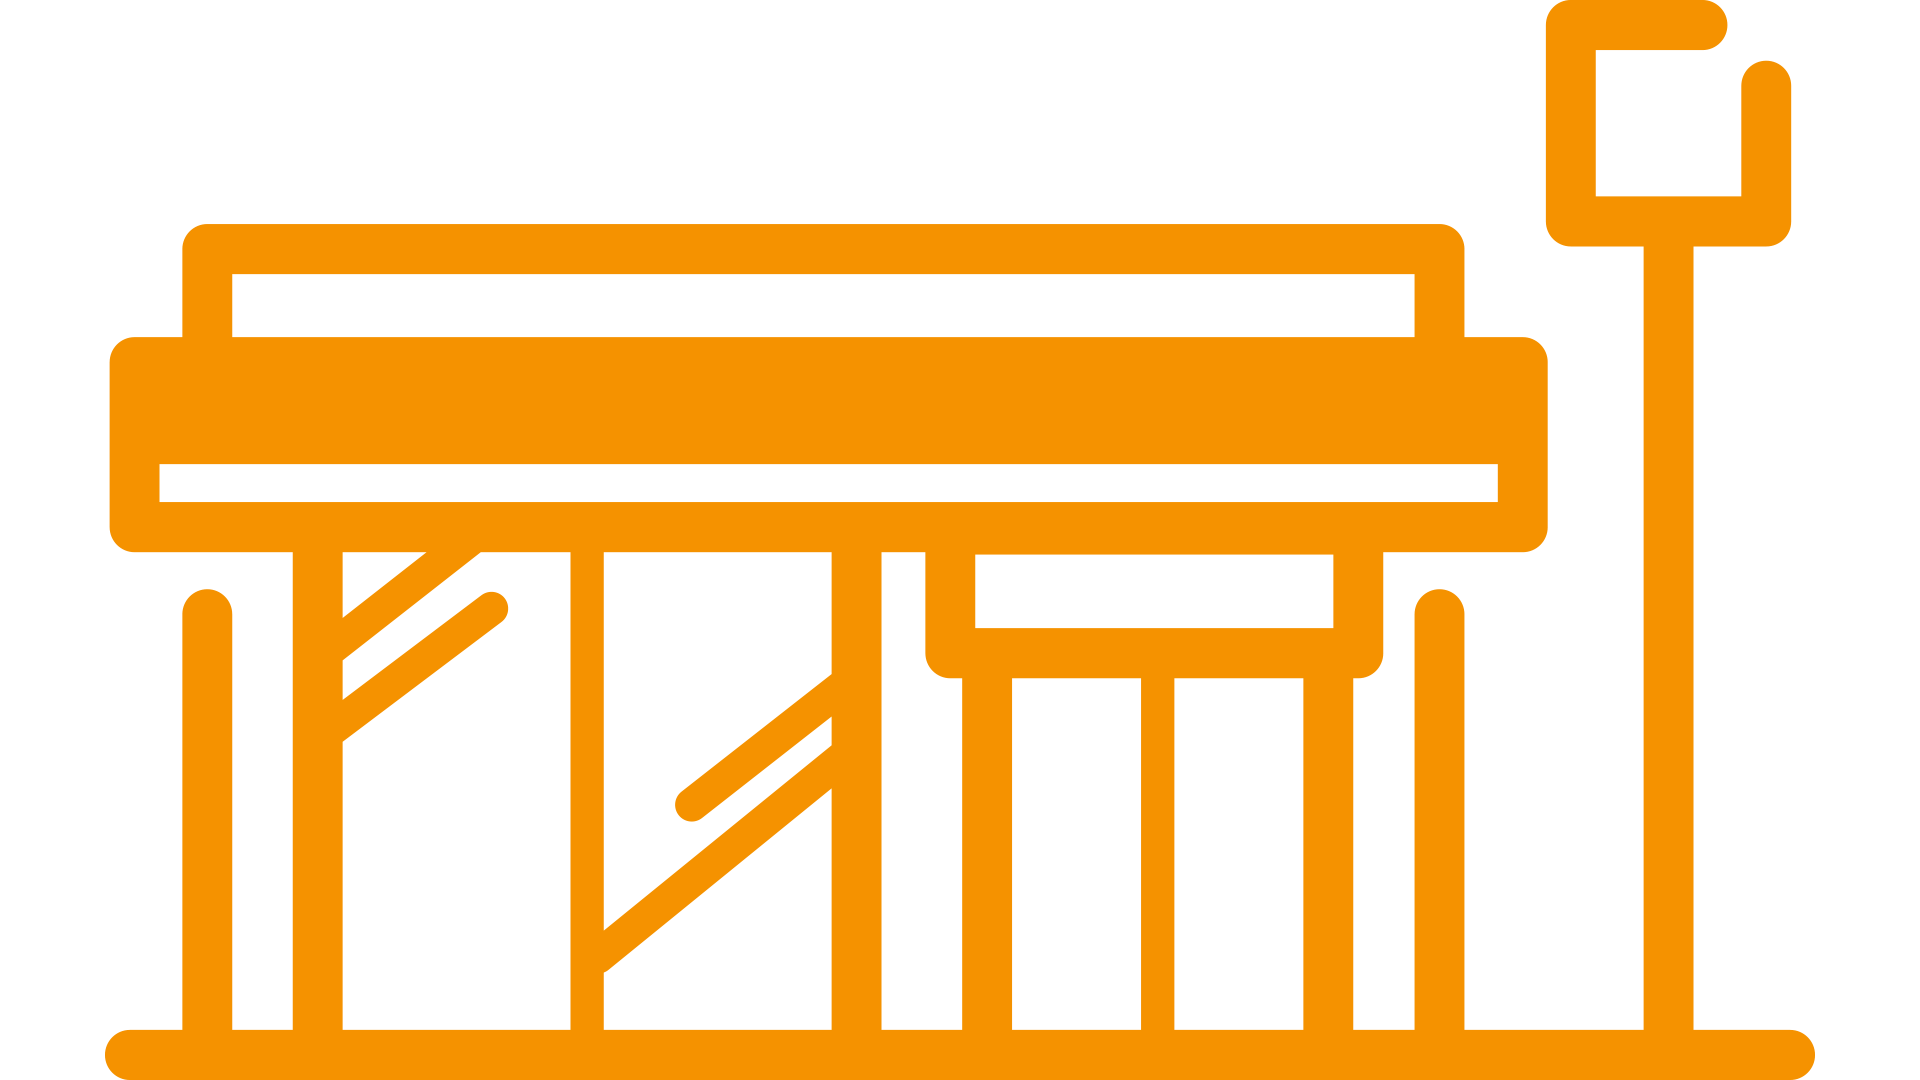 pictogram of of a convenience store